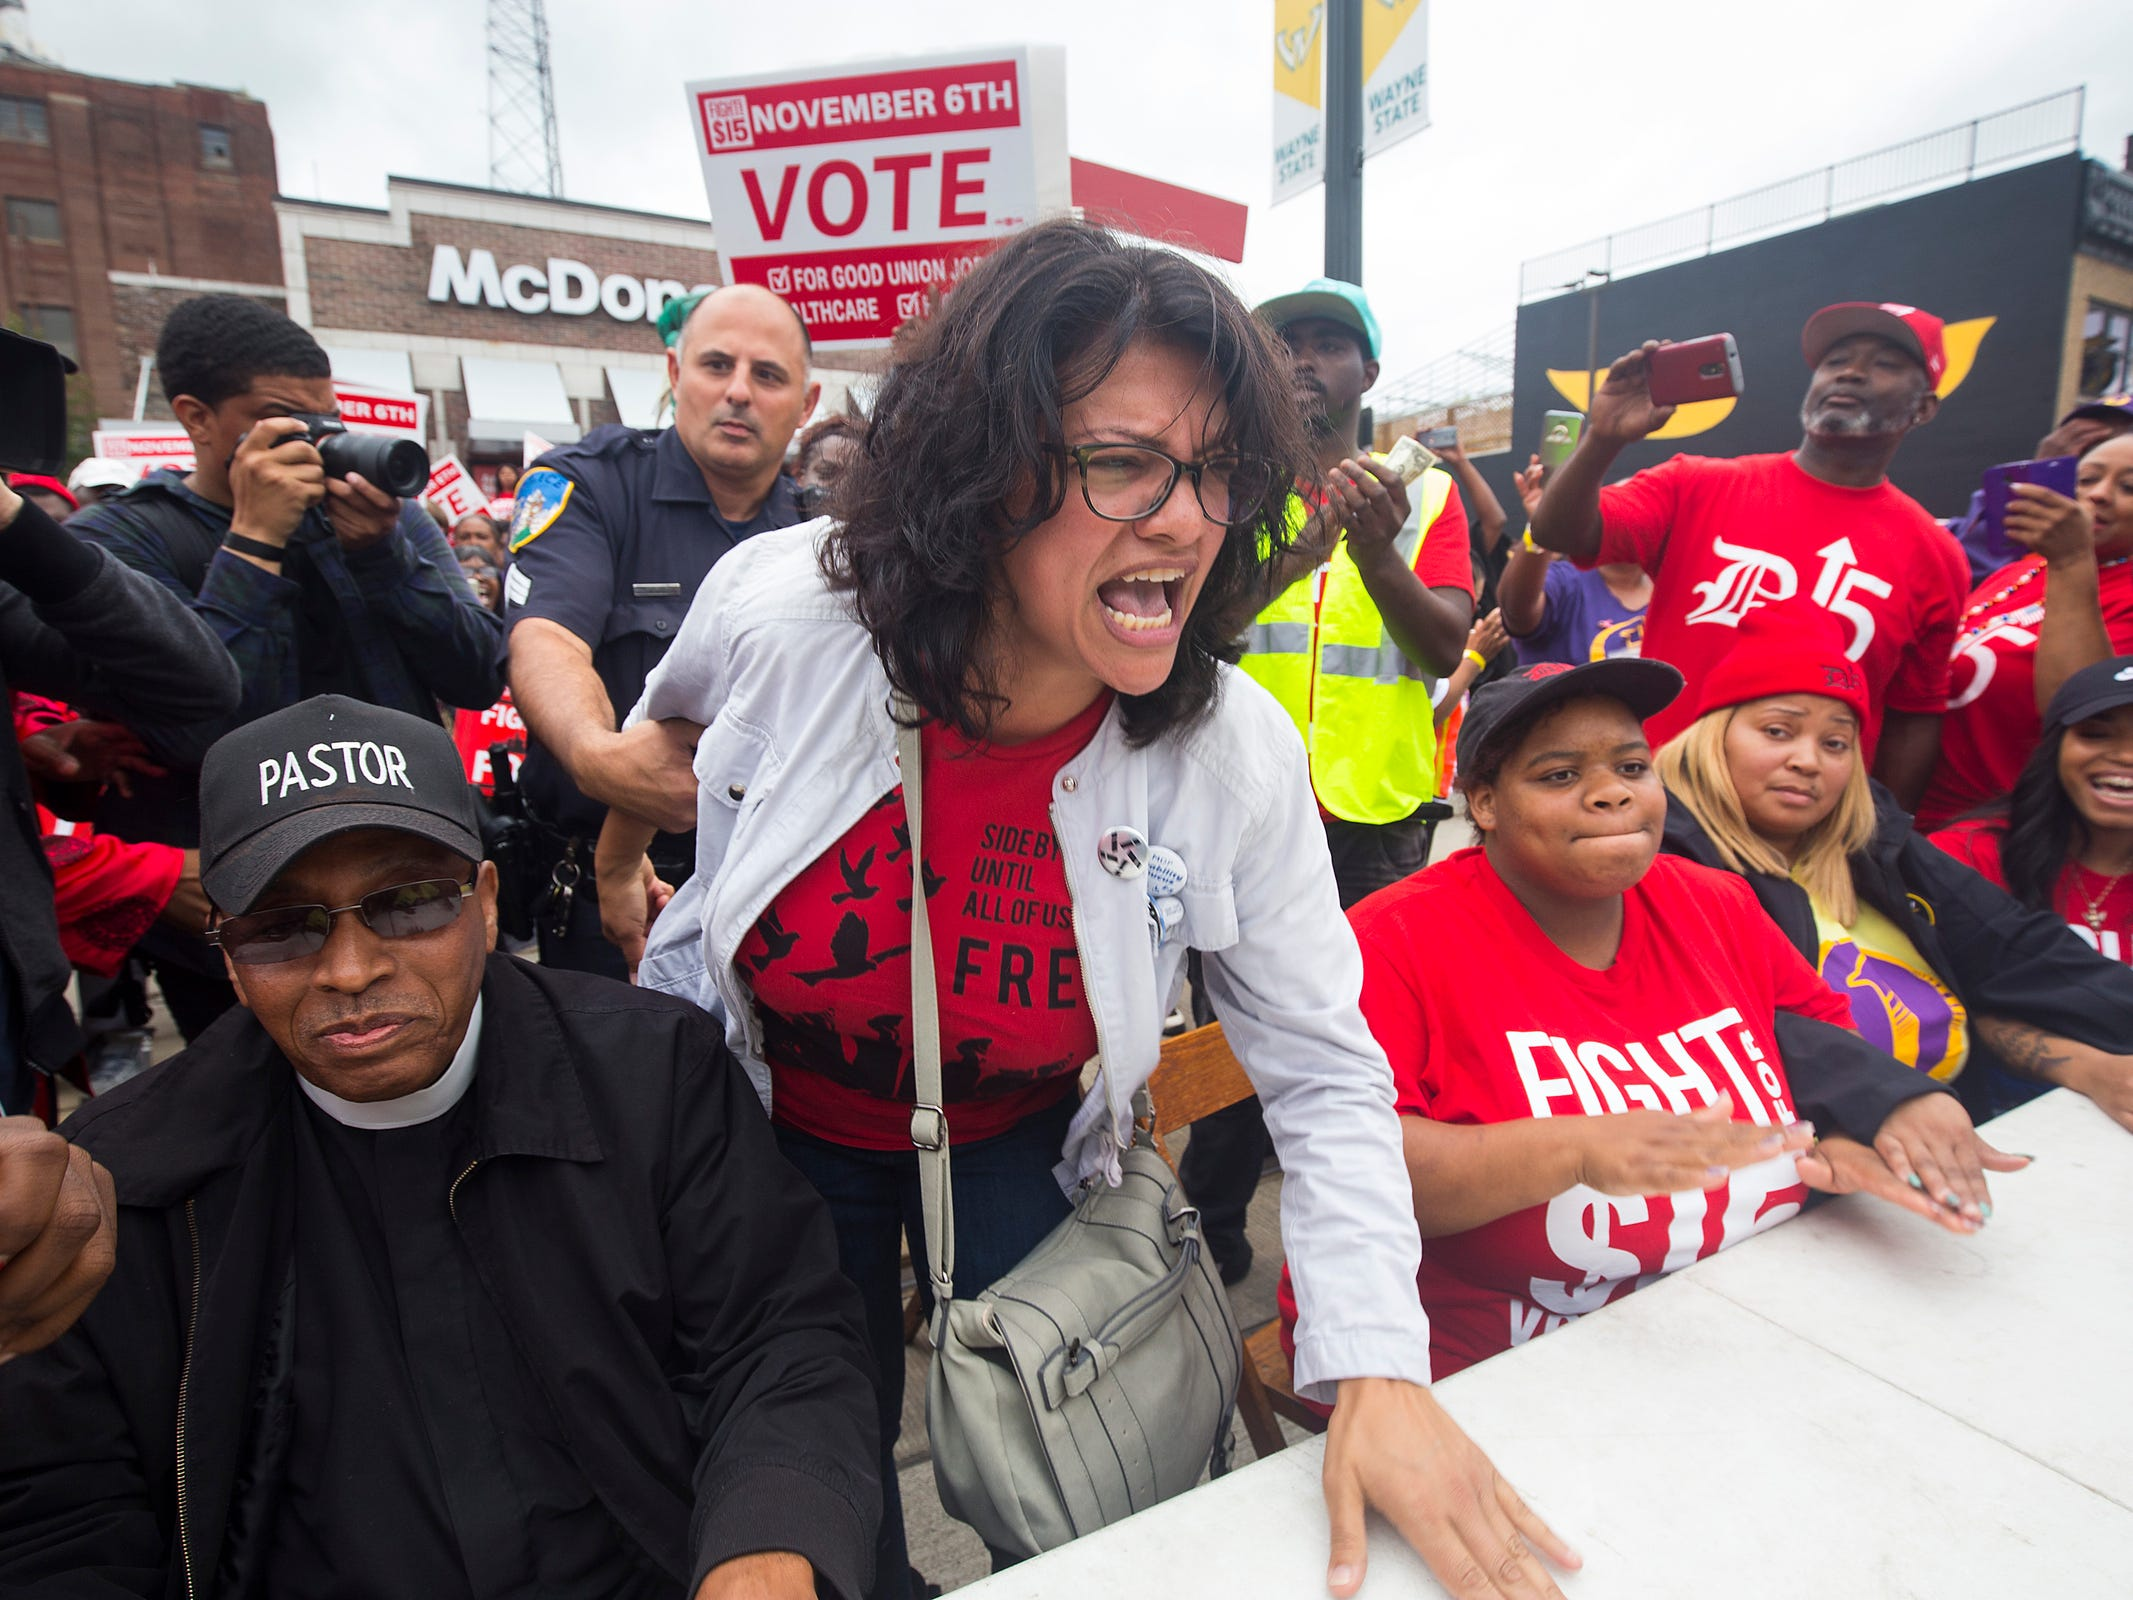 Congressional candidate Rashida Tlaib joins Fight For $15 rally along with striking McDonalds employees. Tlaib was arrested in front of McDonalds on Woodward Avenue  Tuesday, Oct. 2, 2018 during a protest.